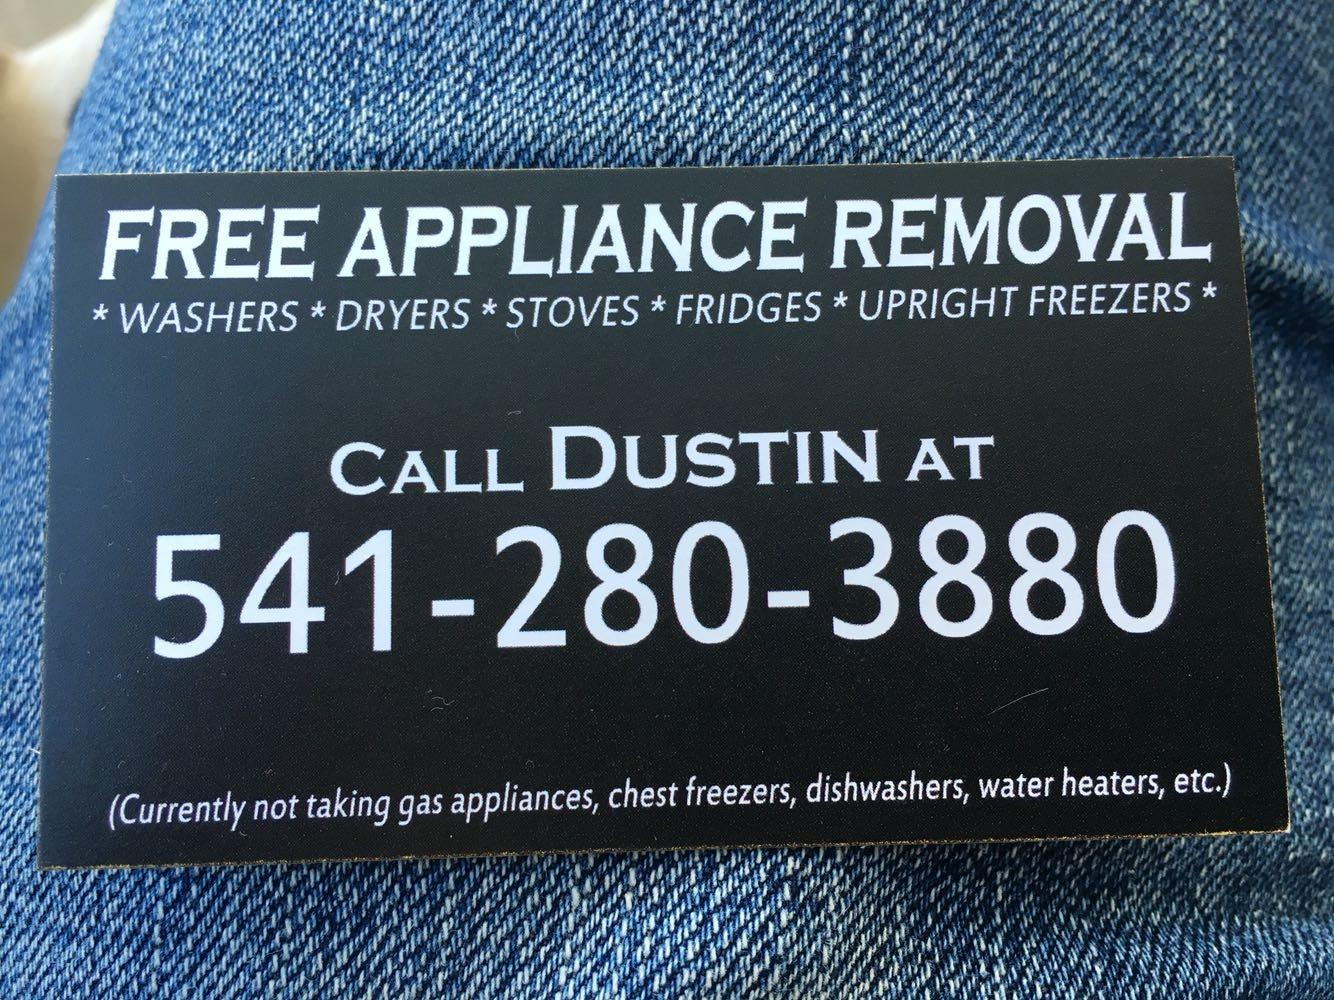 Best Free Appliance Removal for sale in Medford, Oregon for 2019